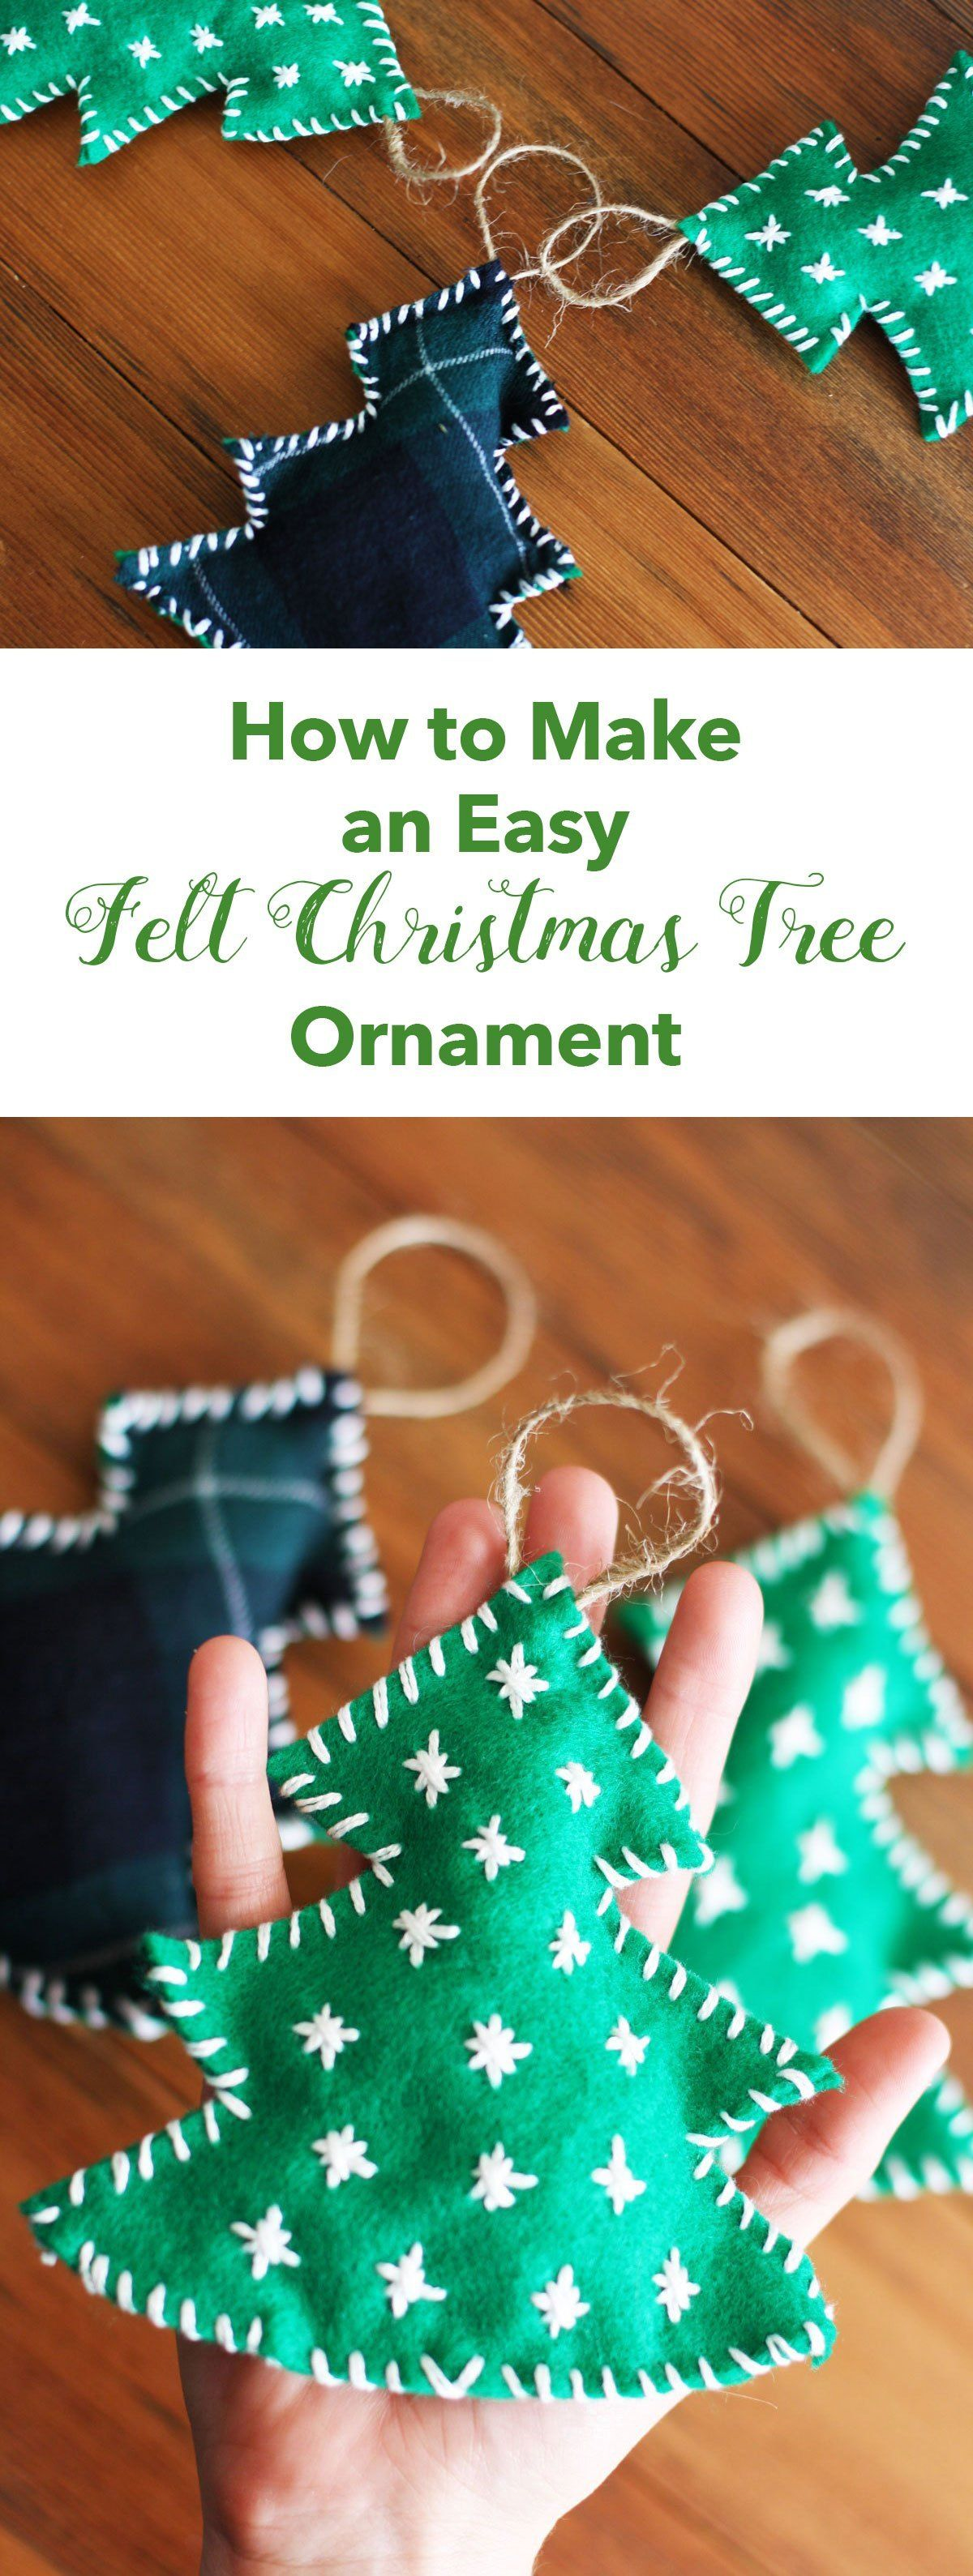 How to Make an Easy Felt Christmas Tree Ornament Felt